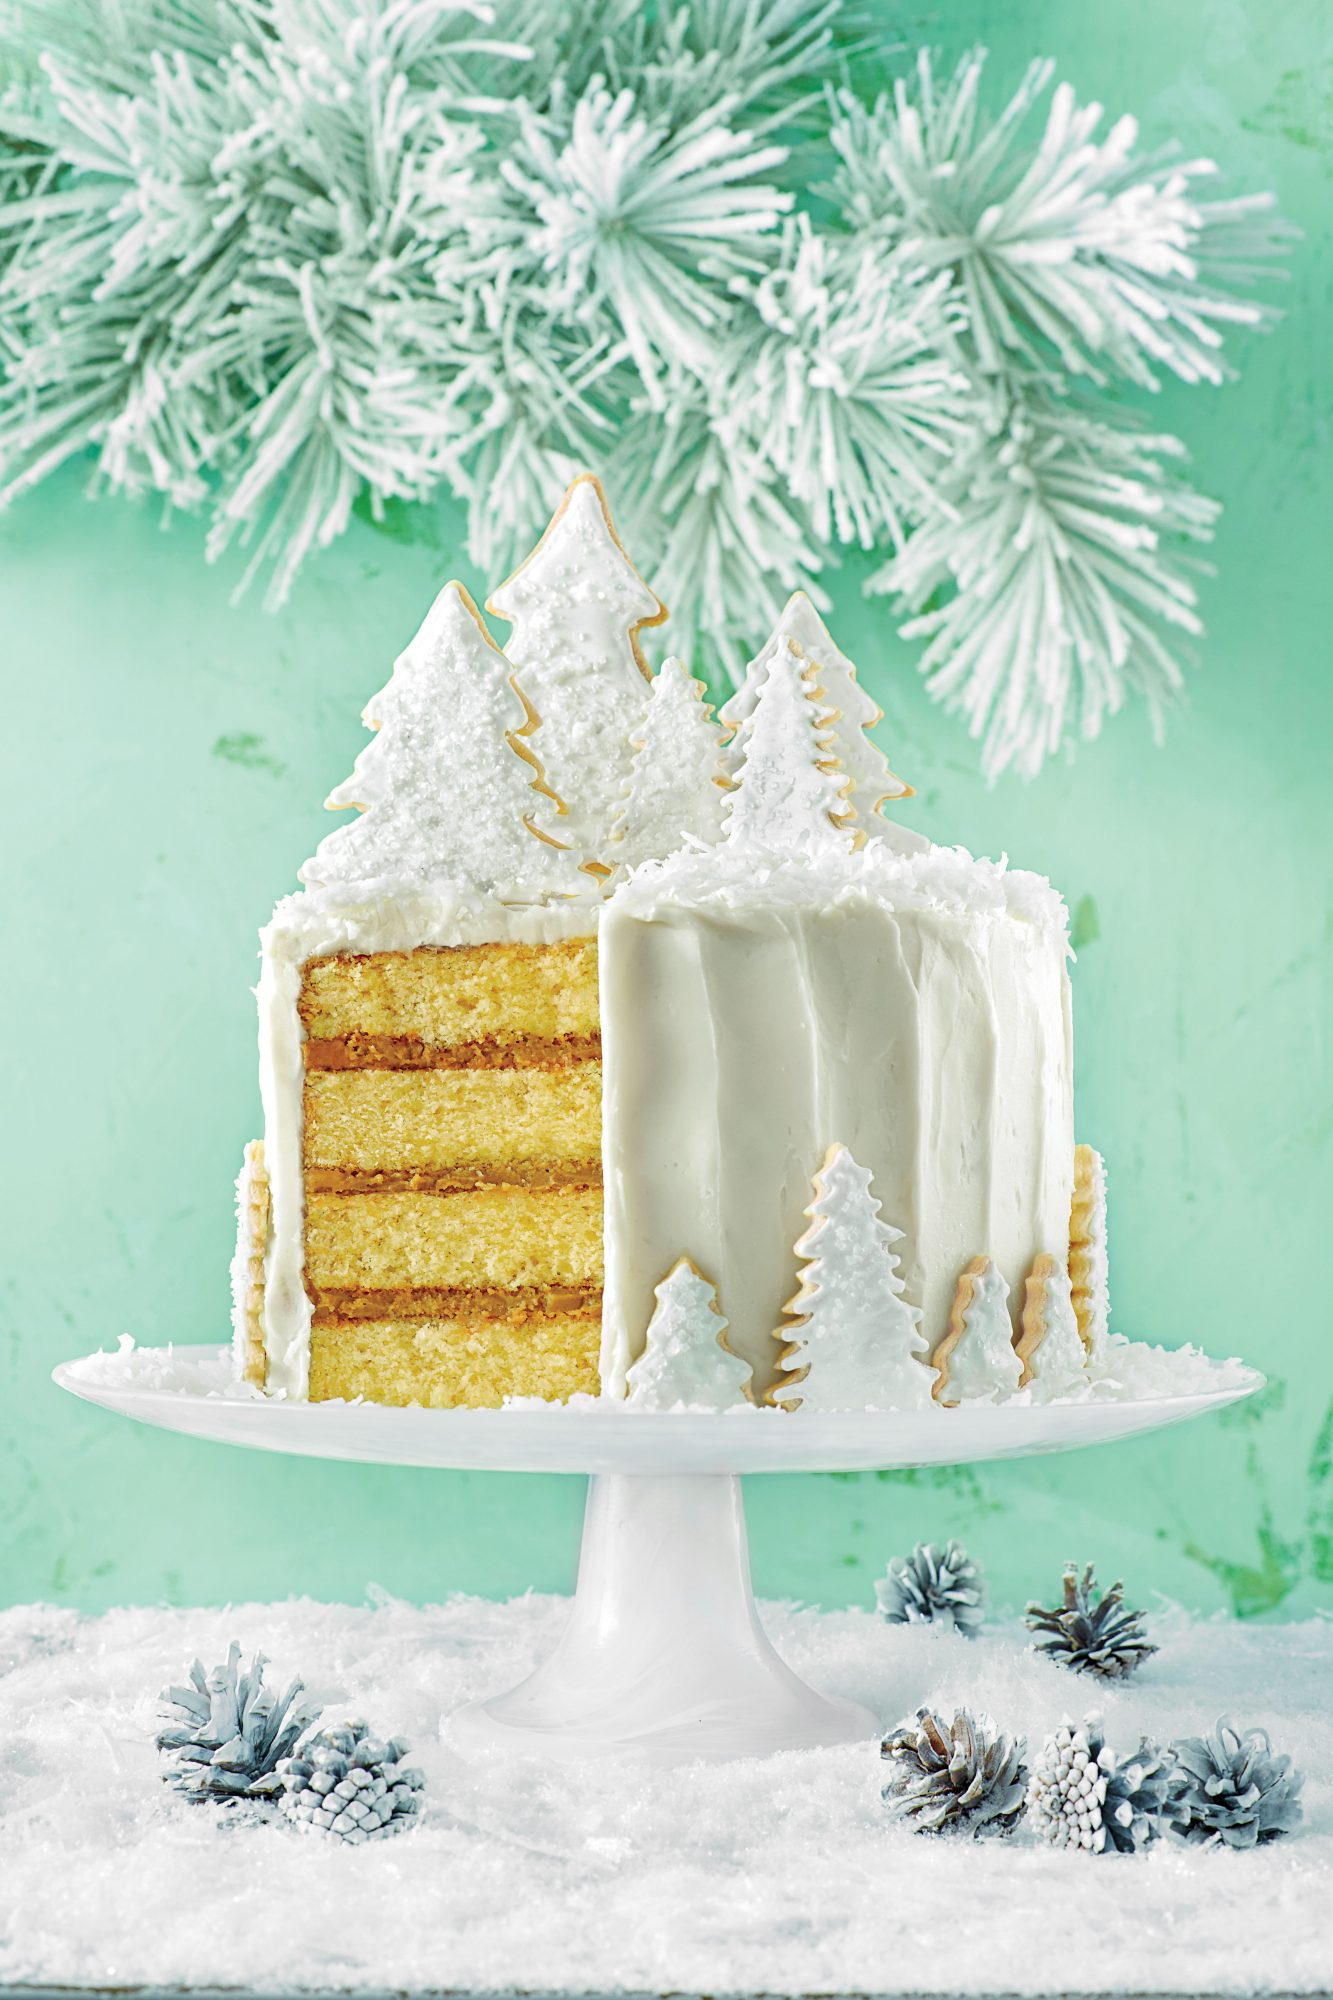 Coconut Cake with Rum Filling and Coconut Ermine Frosting Southern